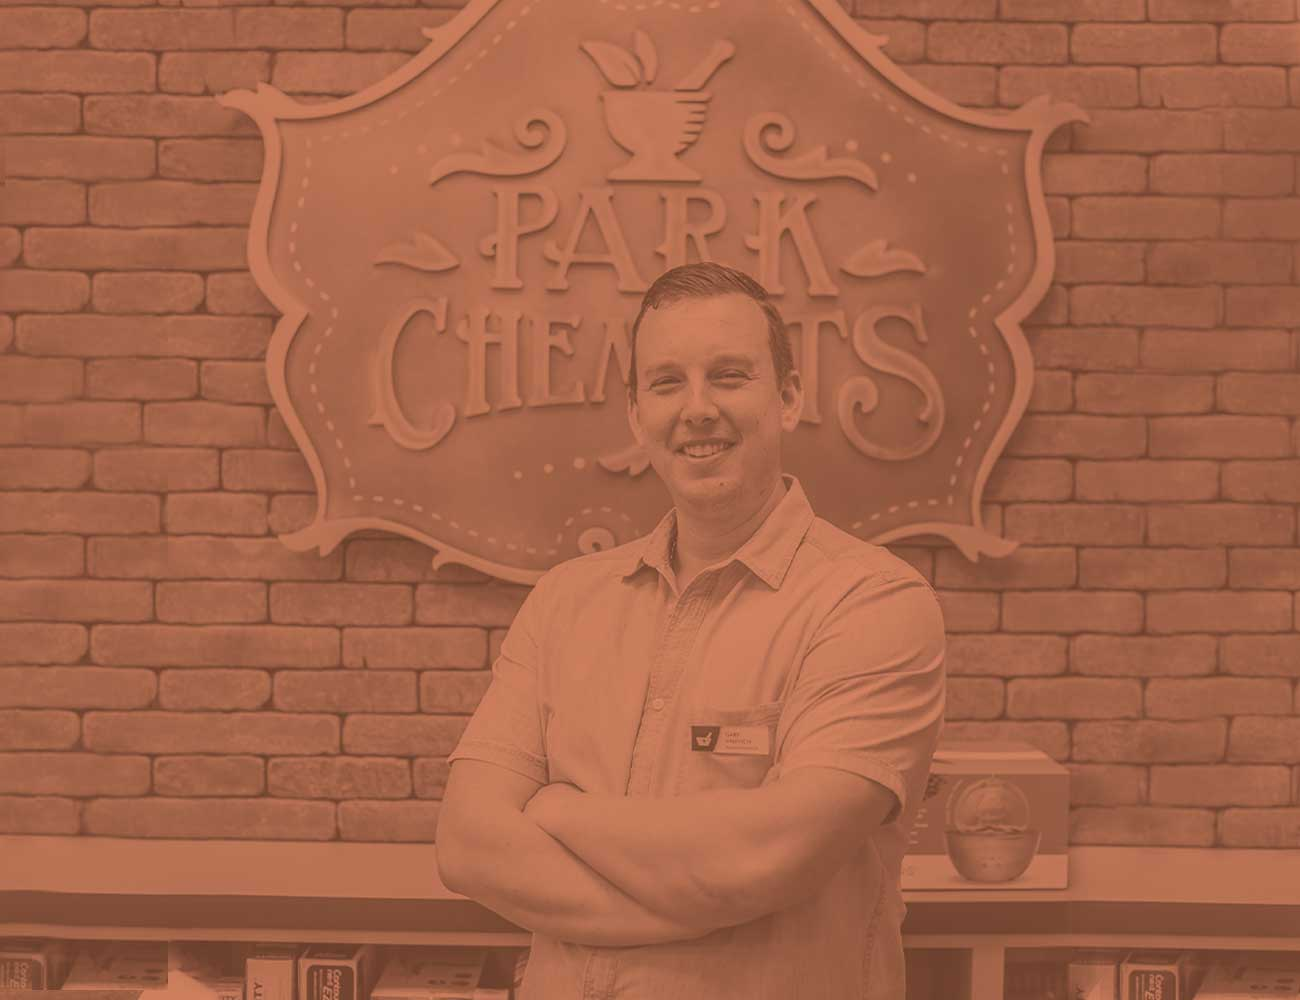 Gary Valevich (Pharmacist/Owner) smiling in front of the Park Chemists sign